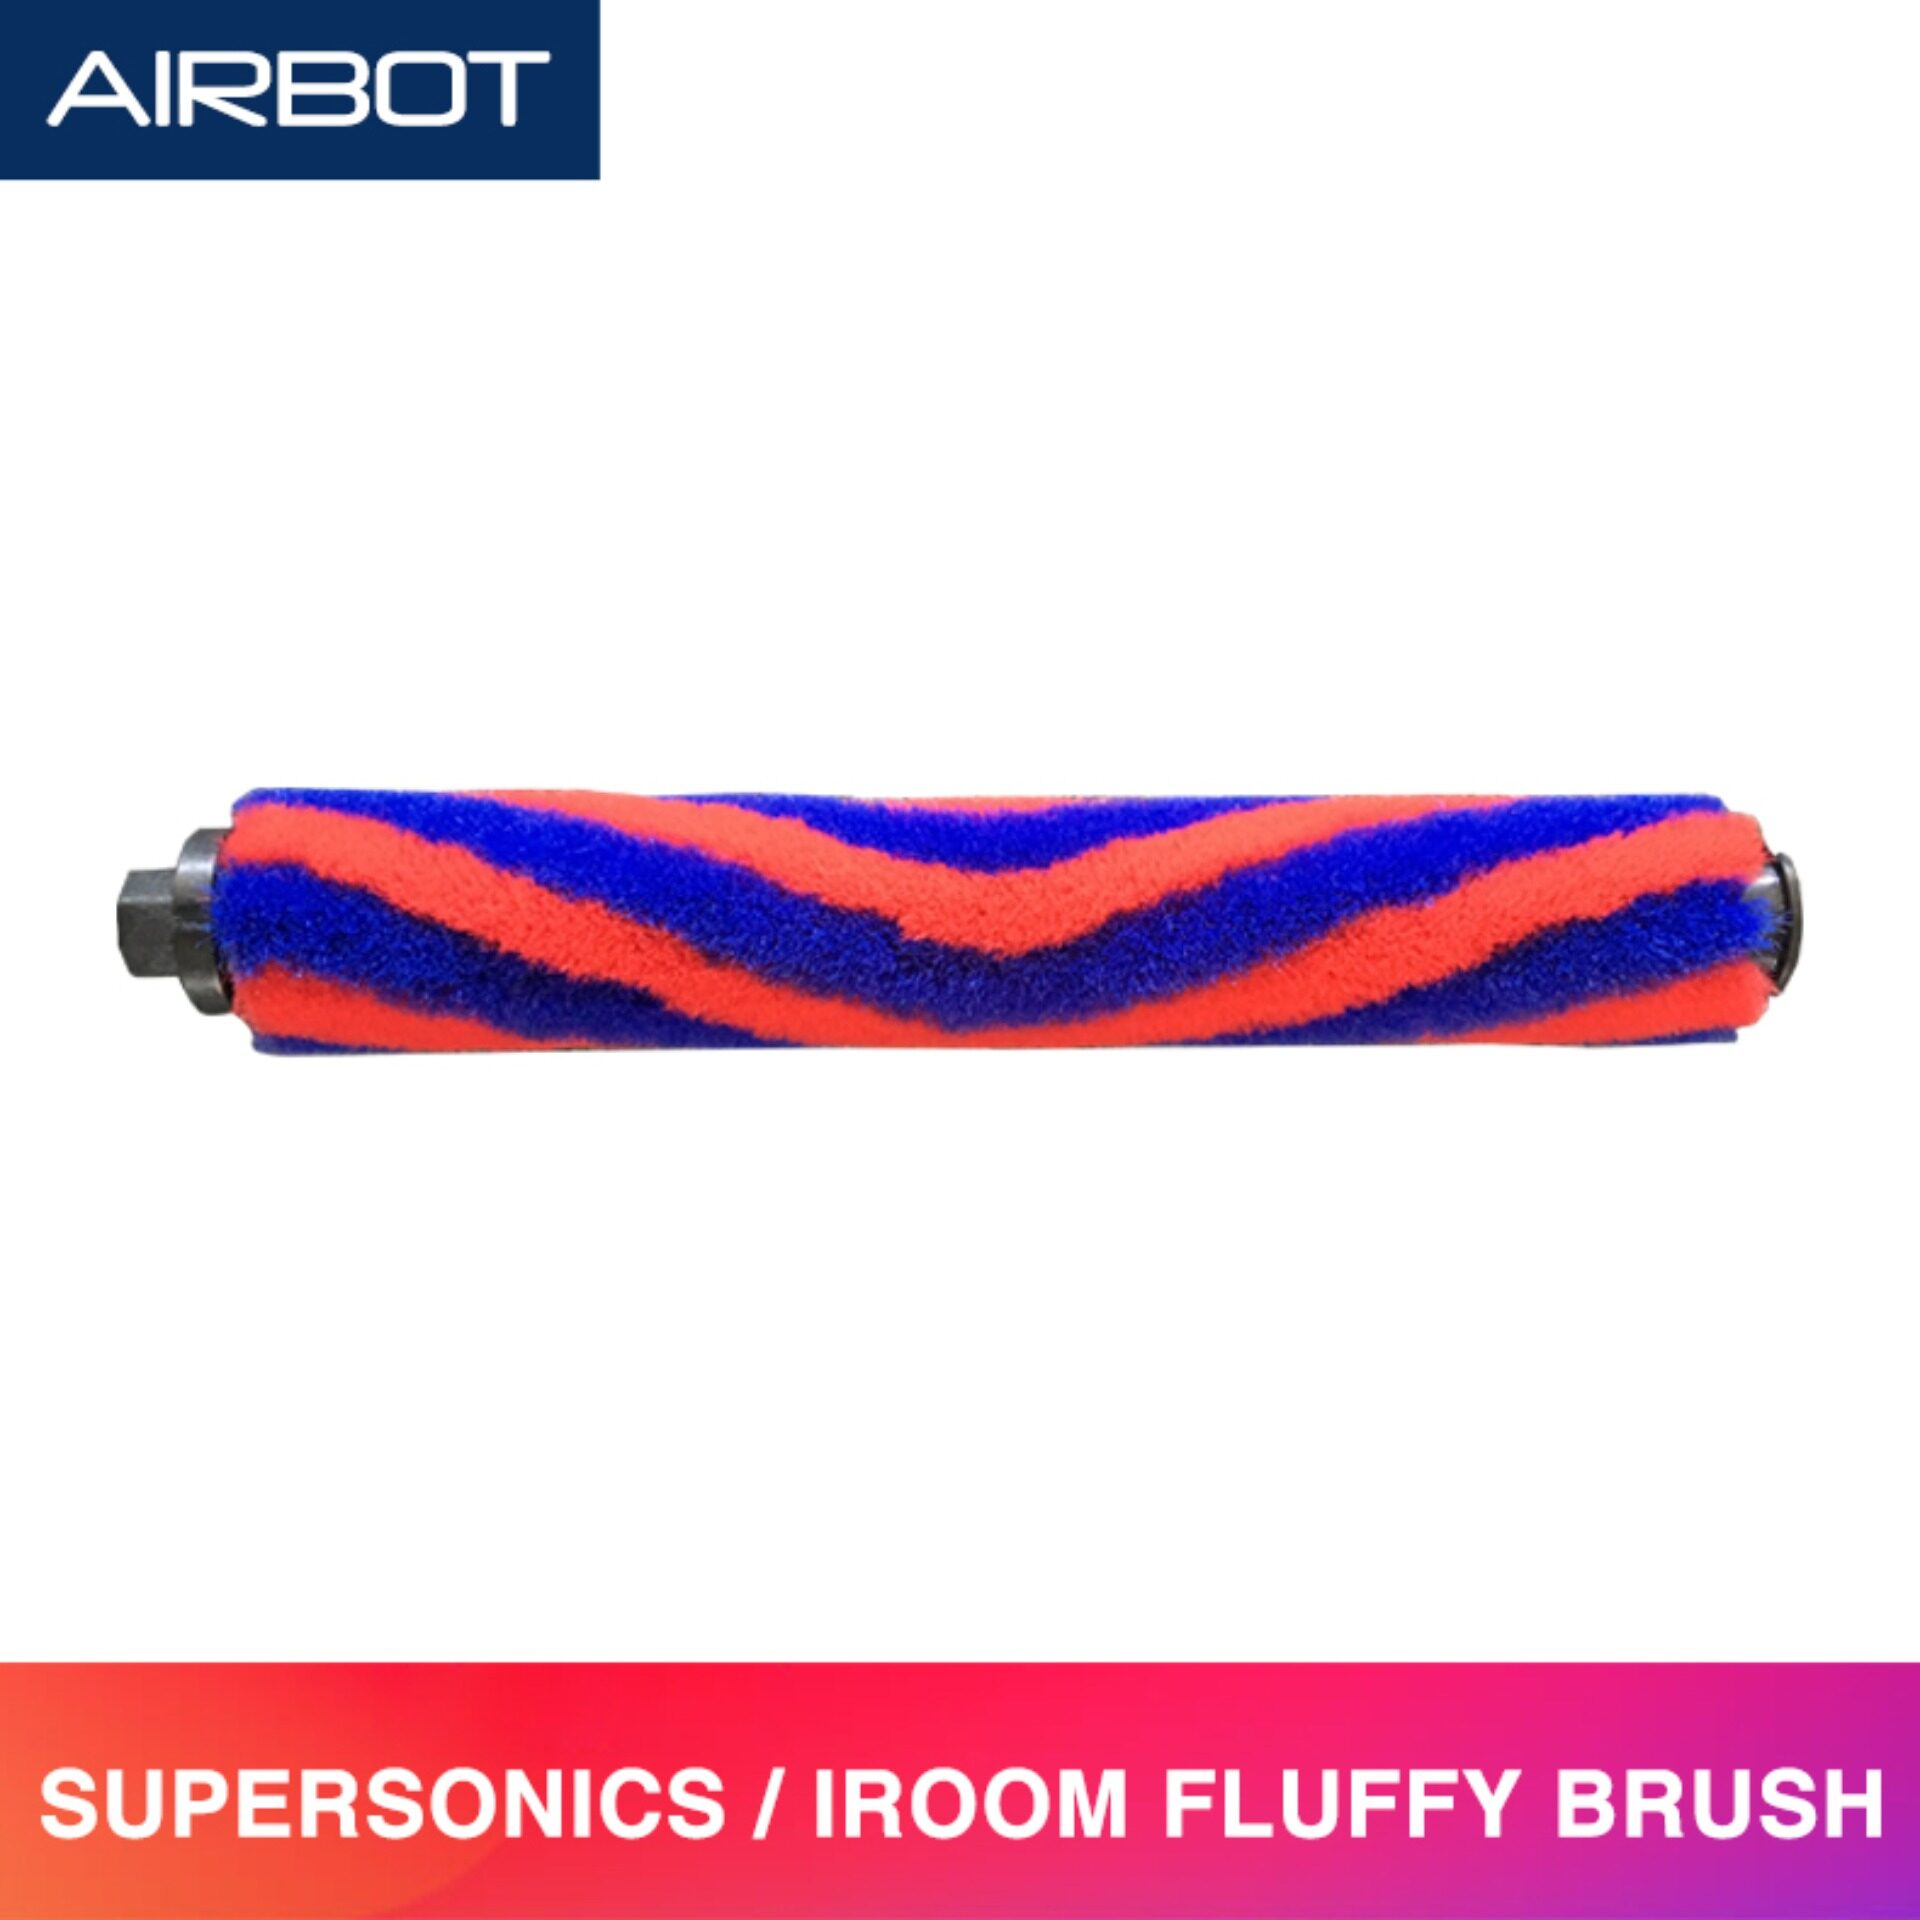 Airbot Fluffy Soft Floor Roller Brush Spare Parts Replacement Accessories Compatible with Supersonics and iRoom